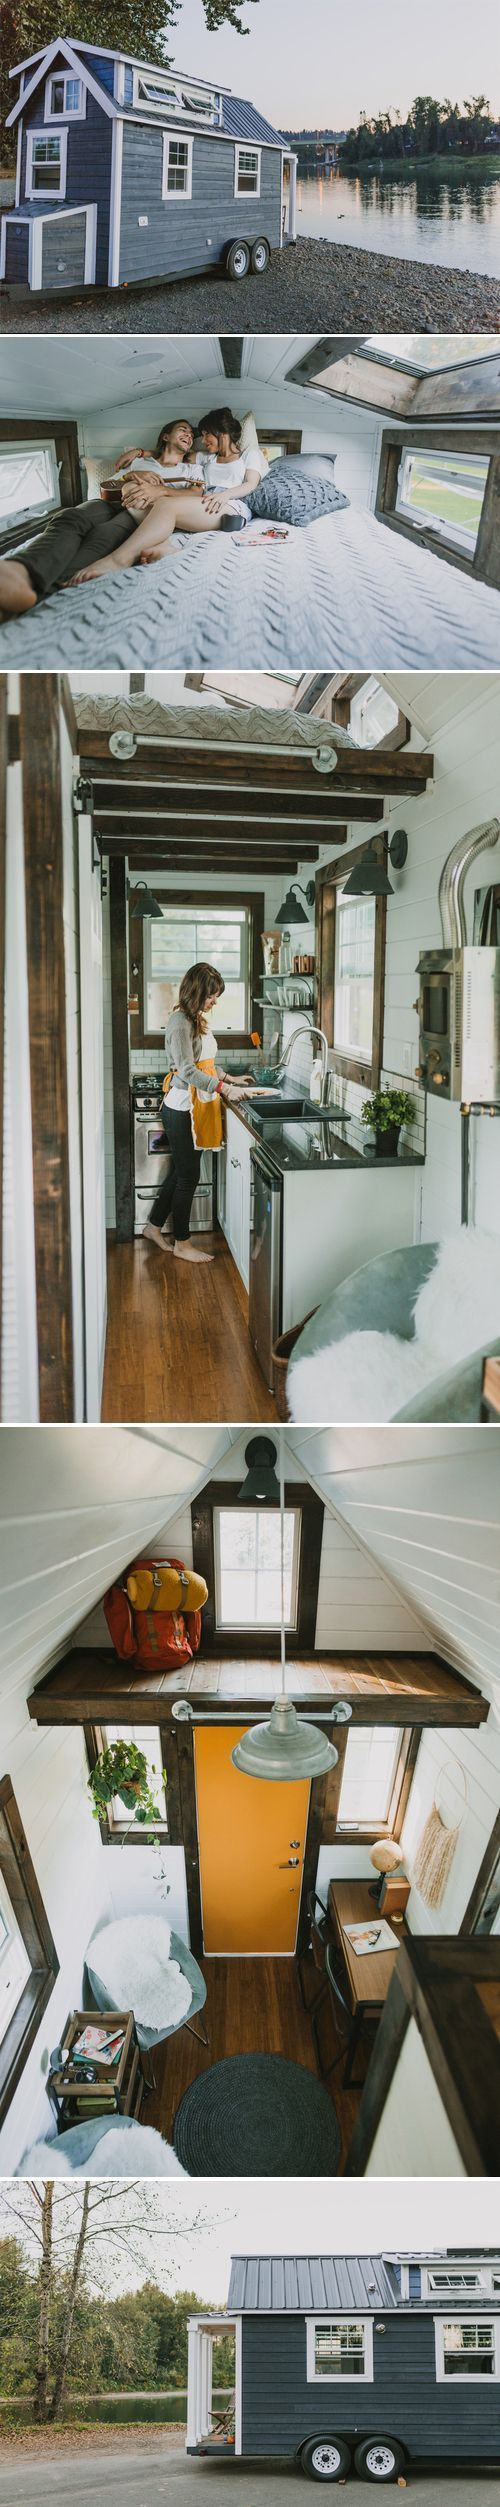 Bedroom tiny home plans on wheels furthermore romeo 500 sq ft log - Tiny House